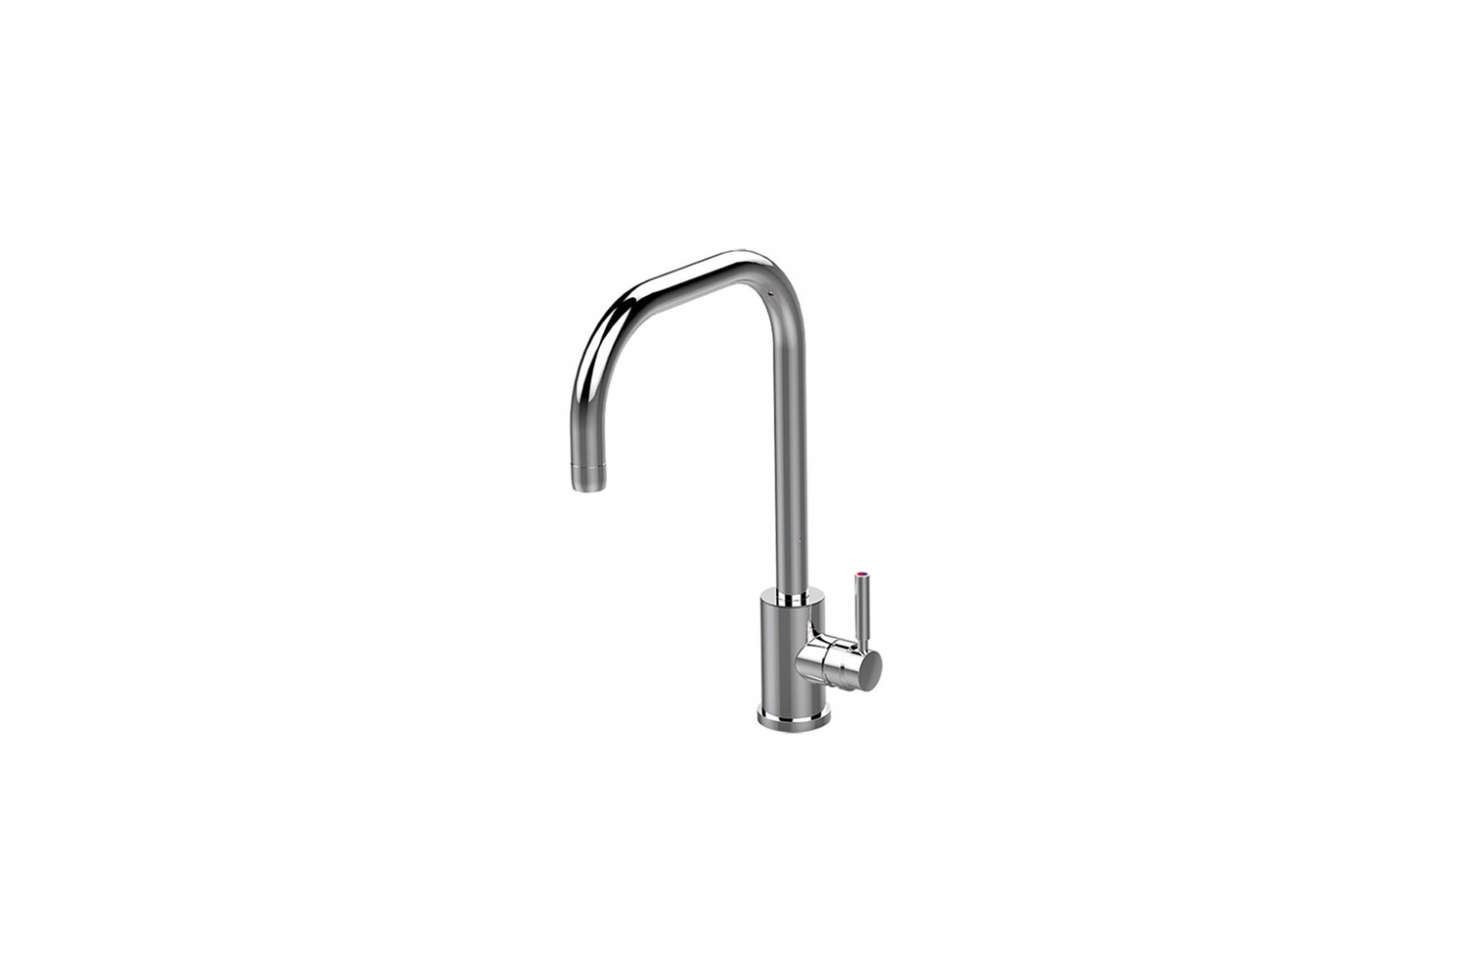 The Perrin & Rowe Juliet Sink Mixer with U Spout is £278 at Perrin & Rowe.